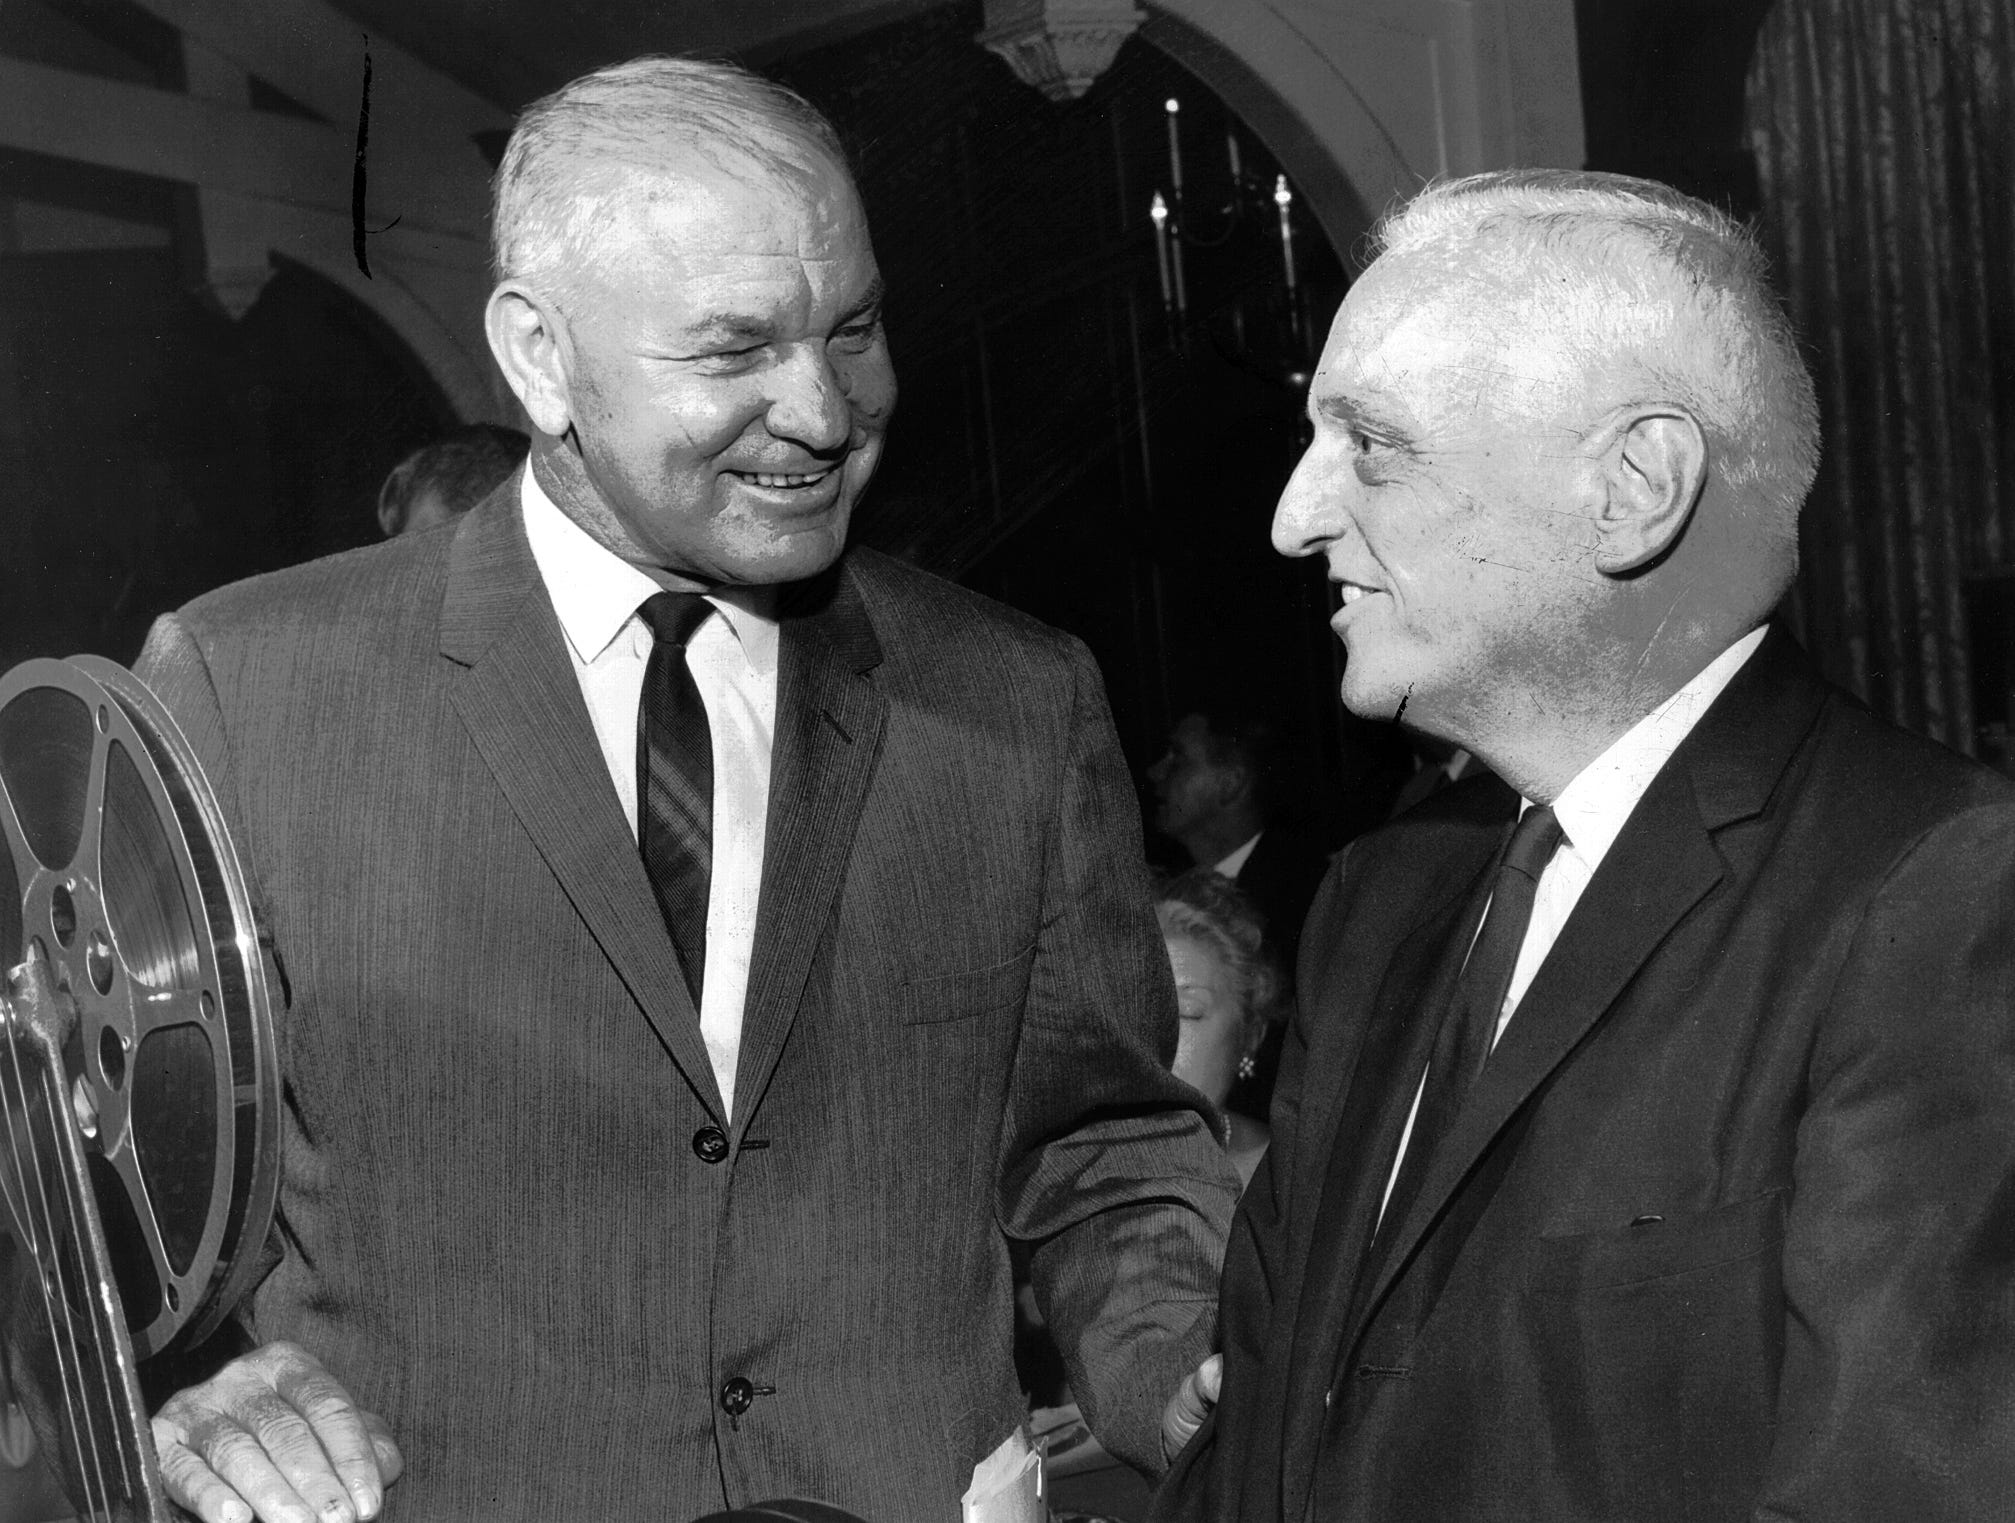 The subject was football, Ole Miss football, when Ole Miss head coach John Vaught (left) and Dr. Ferrell Varner got together on Dec. 8, 1964. Vaught coached the Rebels in four decades. Varner was a longtime team doctor during the Vaught era.